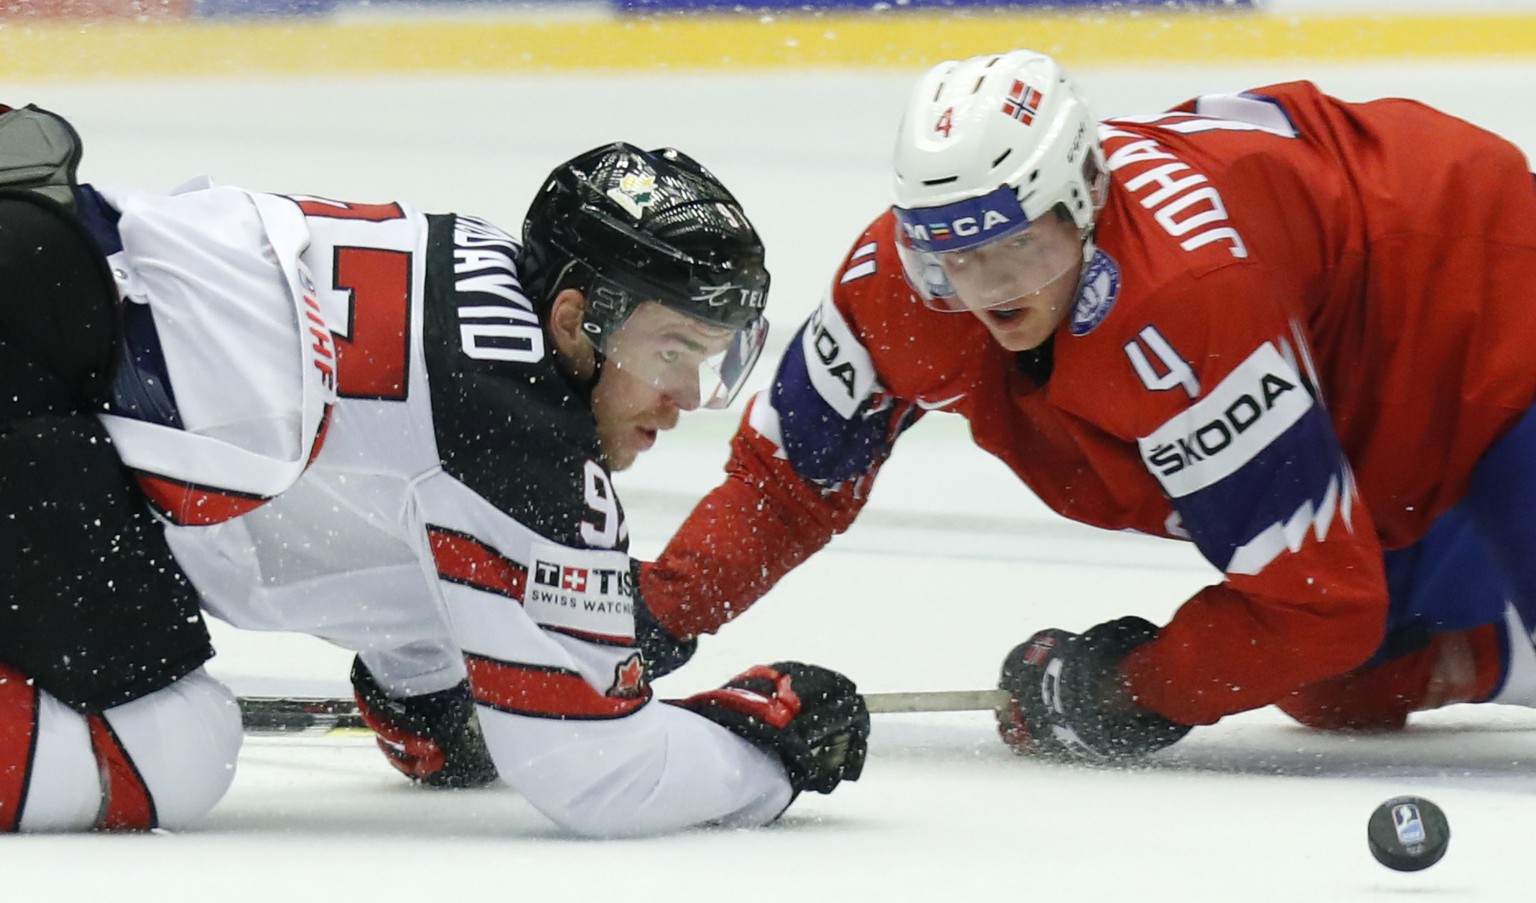 Canada's Connor McDavid, left, challenges for the puck with Norway's Johannes Johannesen, right, during the Ice Hockey World Championships group B match between Norway and Canada at the Jyske Bank Boxen arena in Herning, Denmark, Thursday, May 10, 2018. (AP Photo/Petr David Josek)